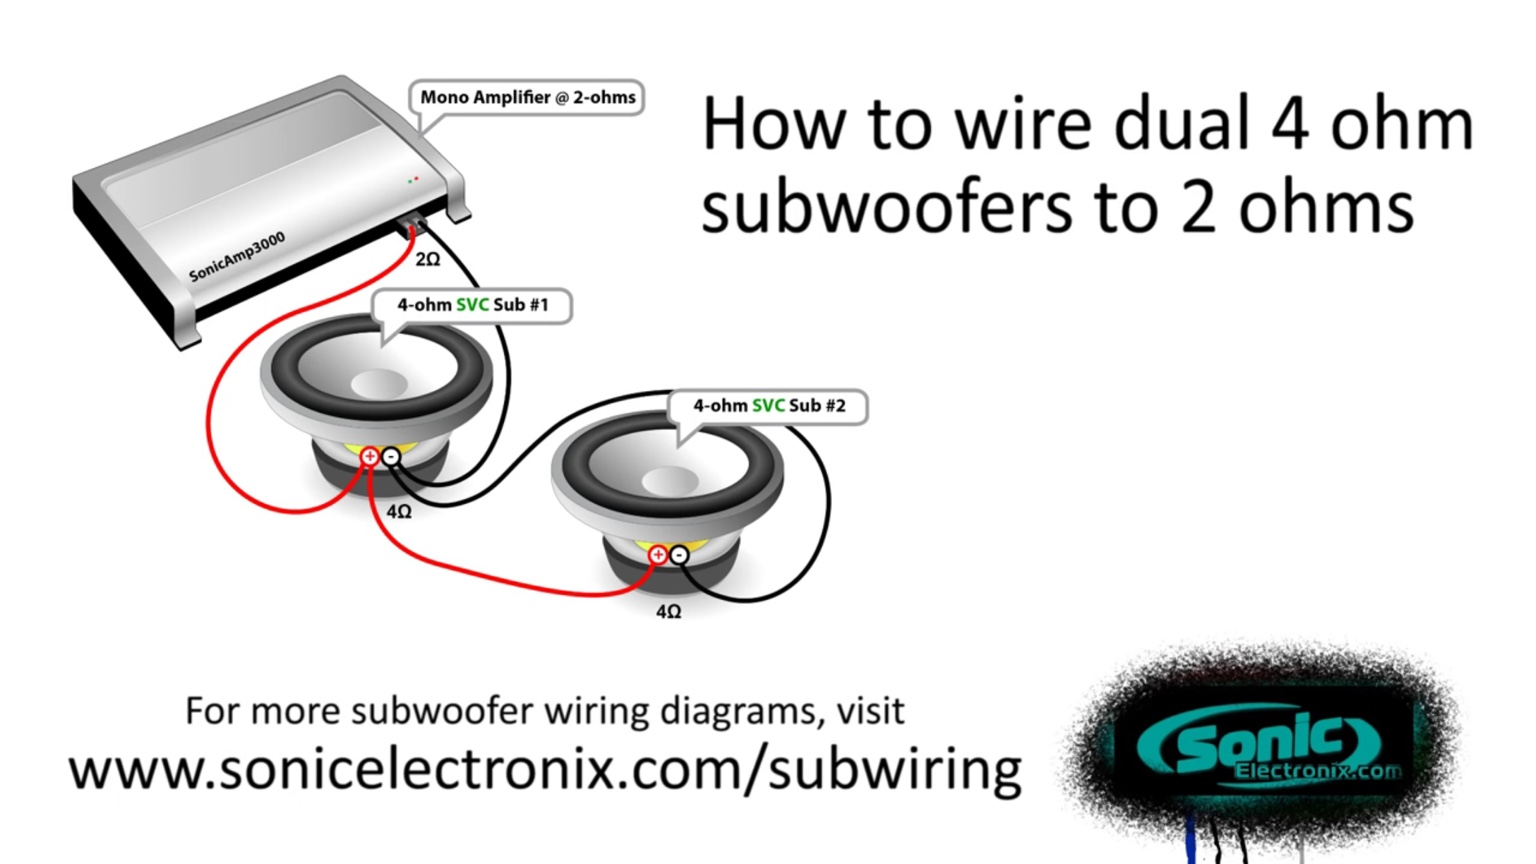 Modern How To Wire Dual 4 Ohm Sub To 2 Ohm Pattern - Best Images for ...